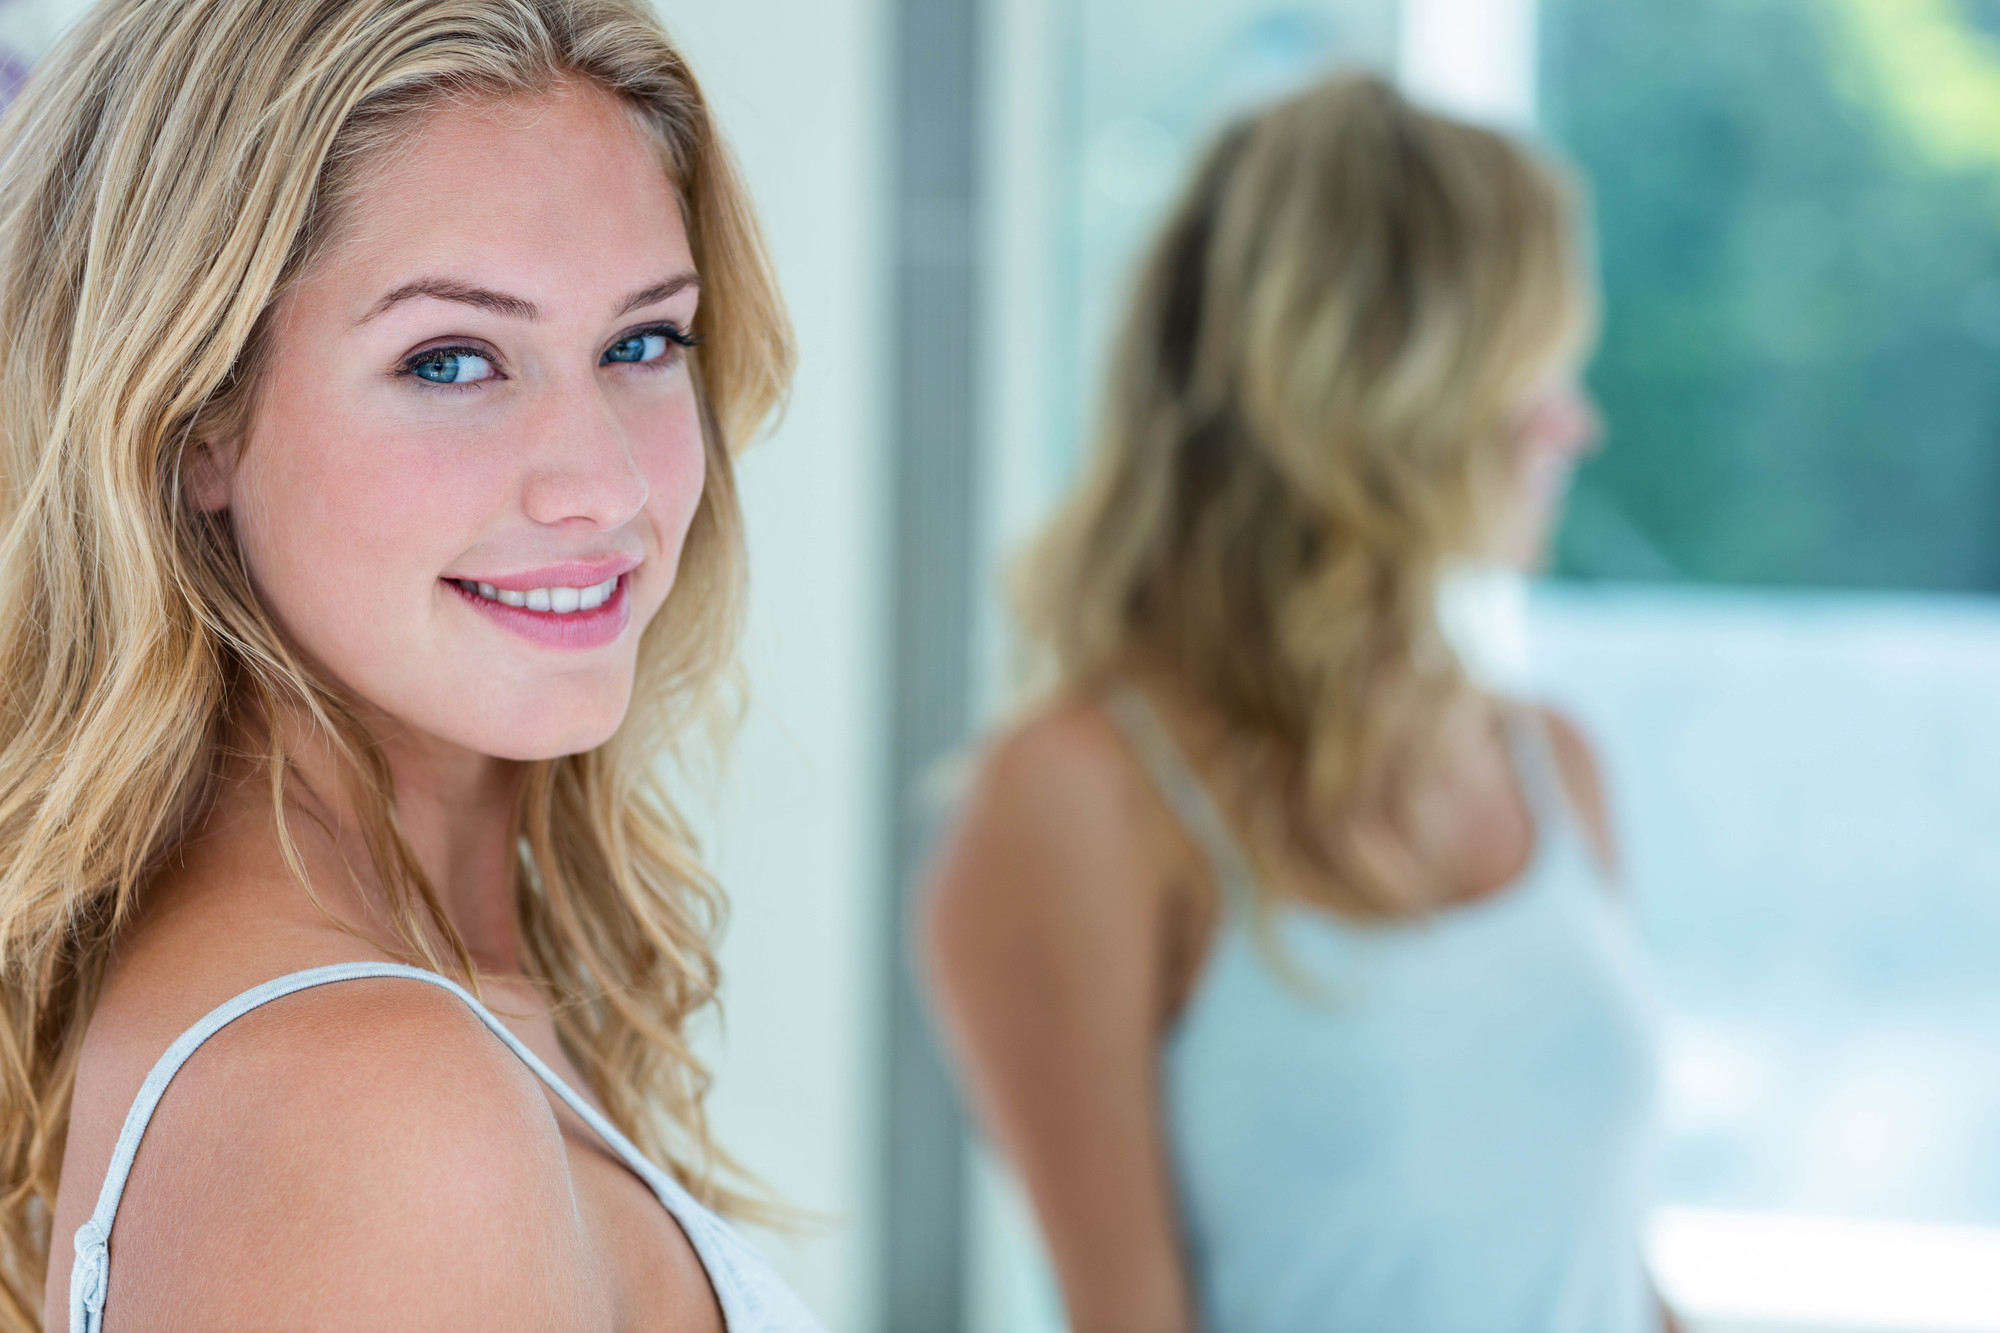 Smiling beautiful young woman looking at herself in the bathroom mirror at home